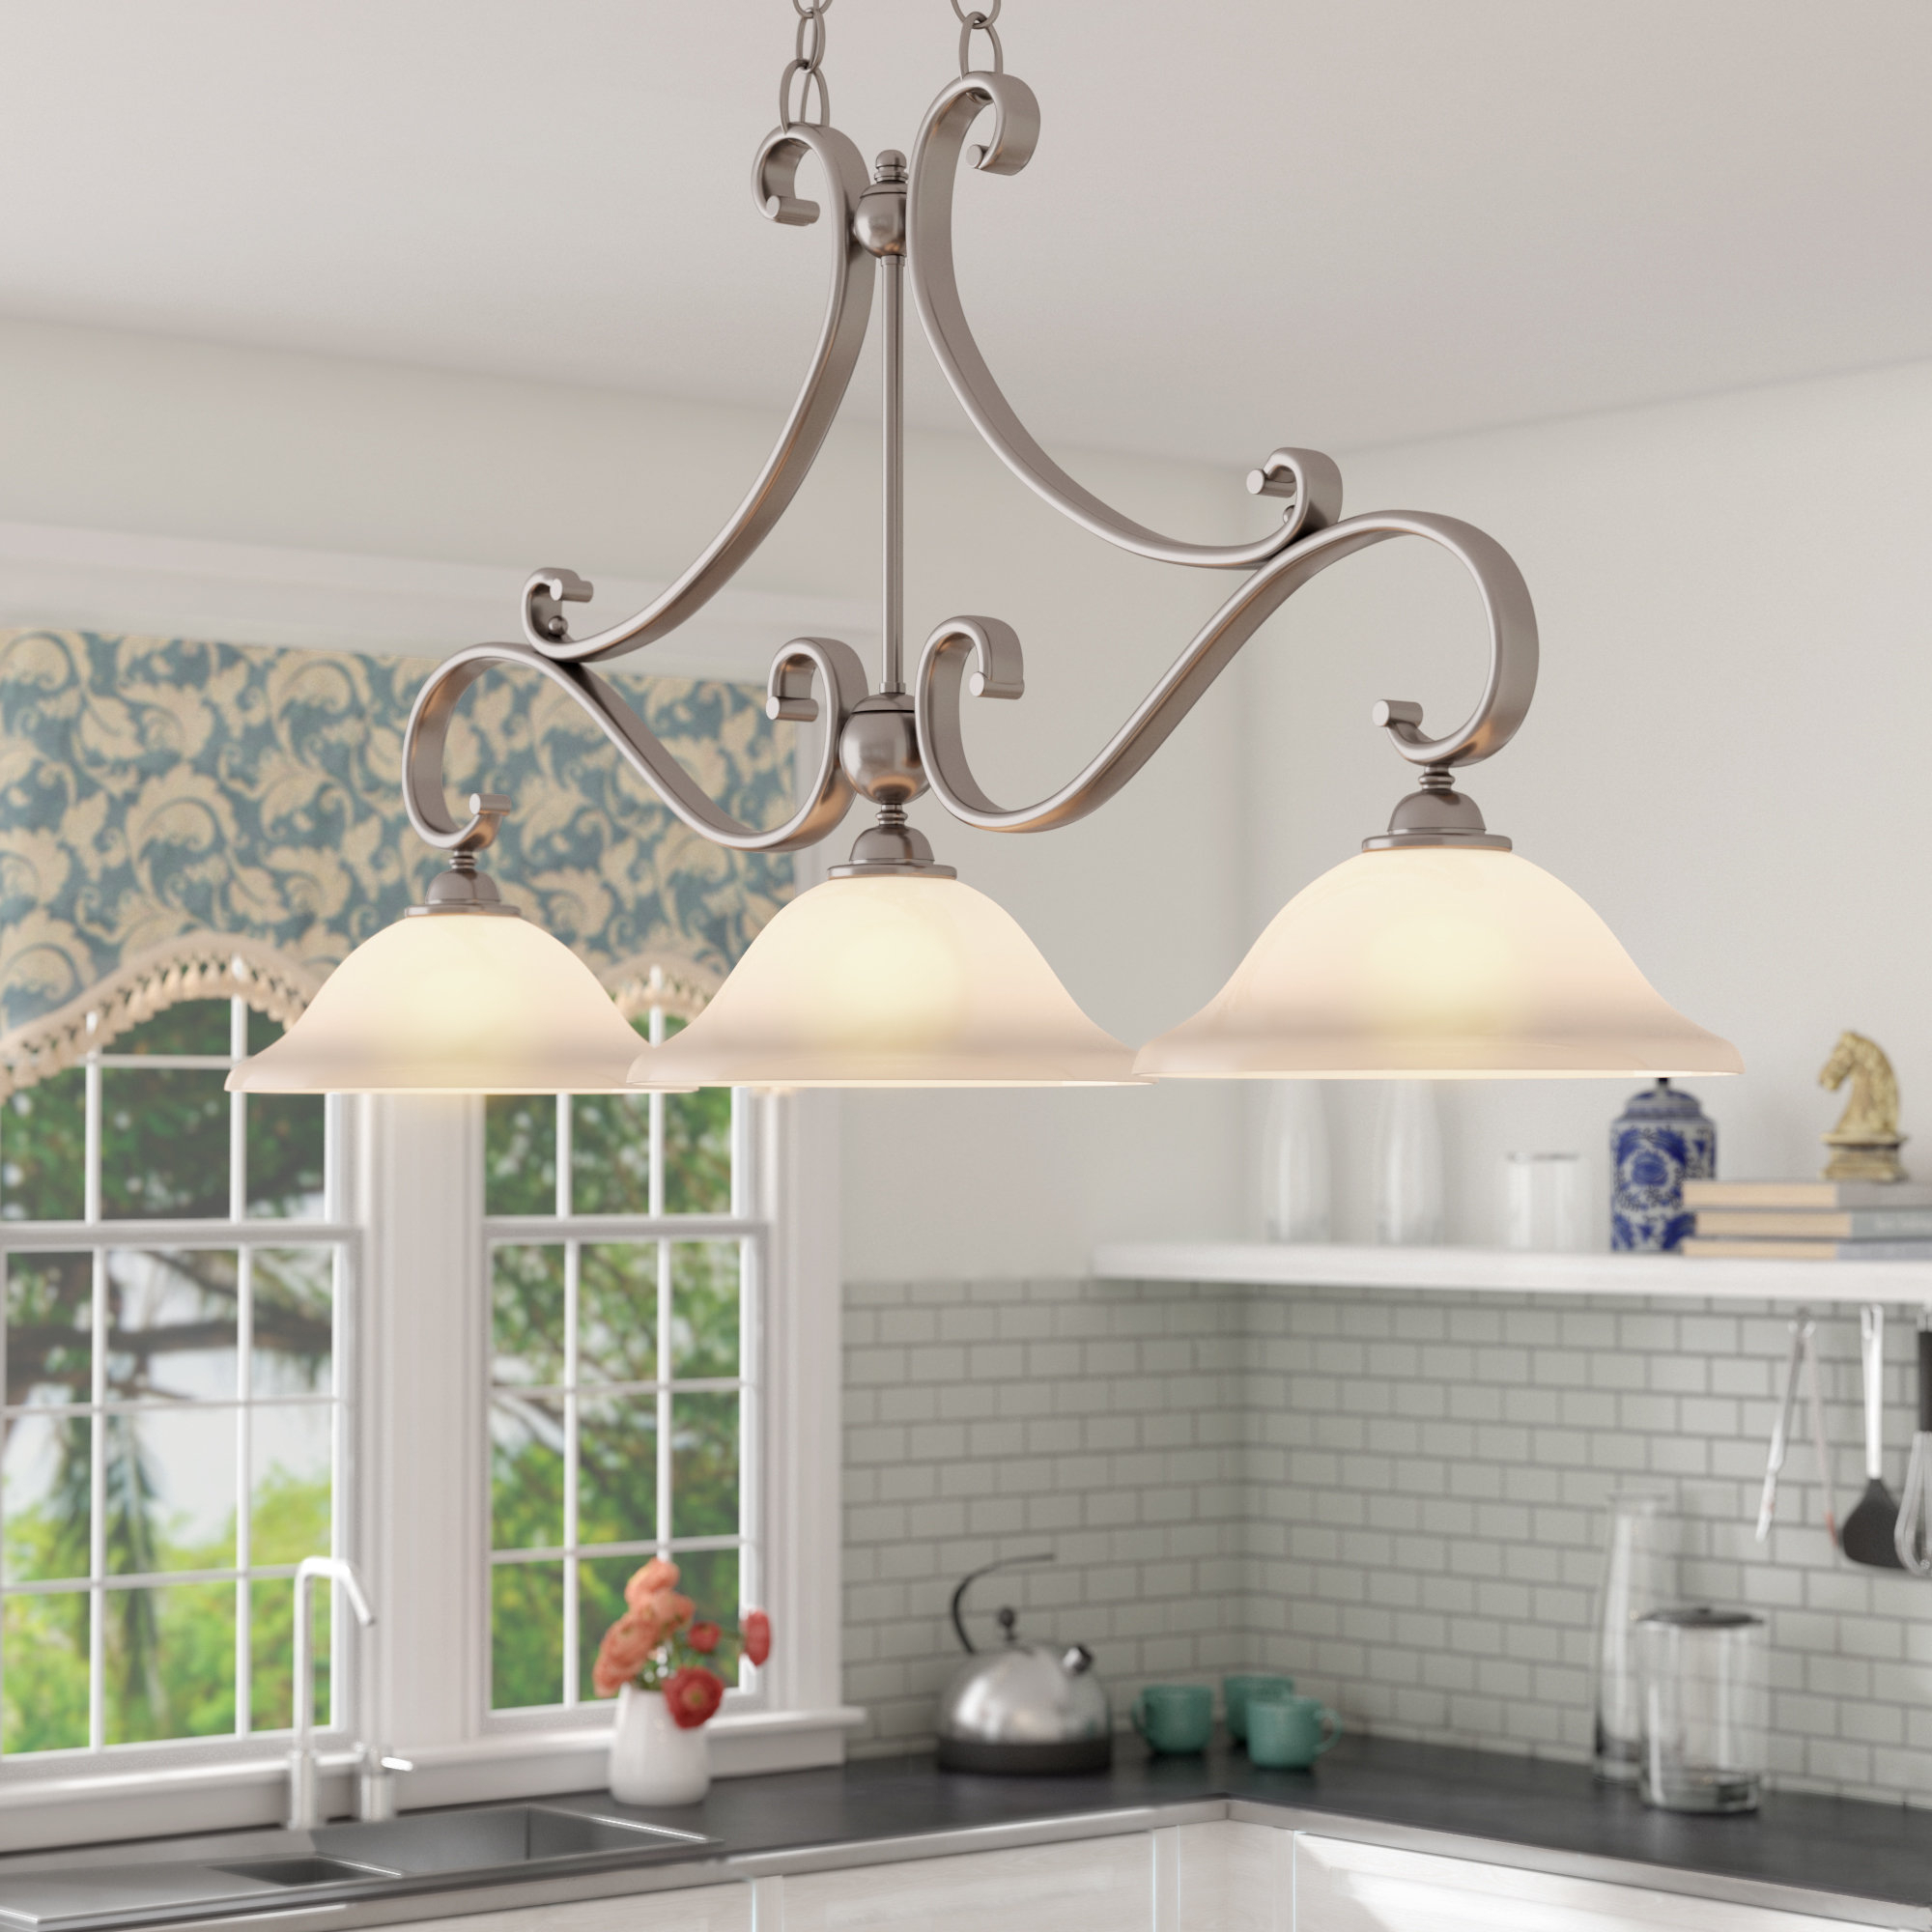 Van Horne 3 Light Kitchen Island Linear Pendant In Van Horne 3 Light Single Teardrop Pendants (View 4 of 30)